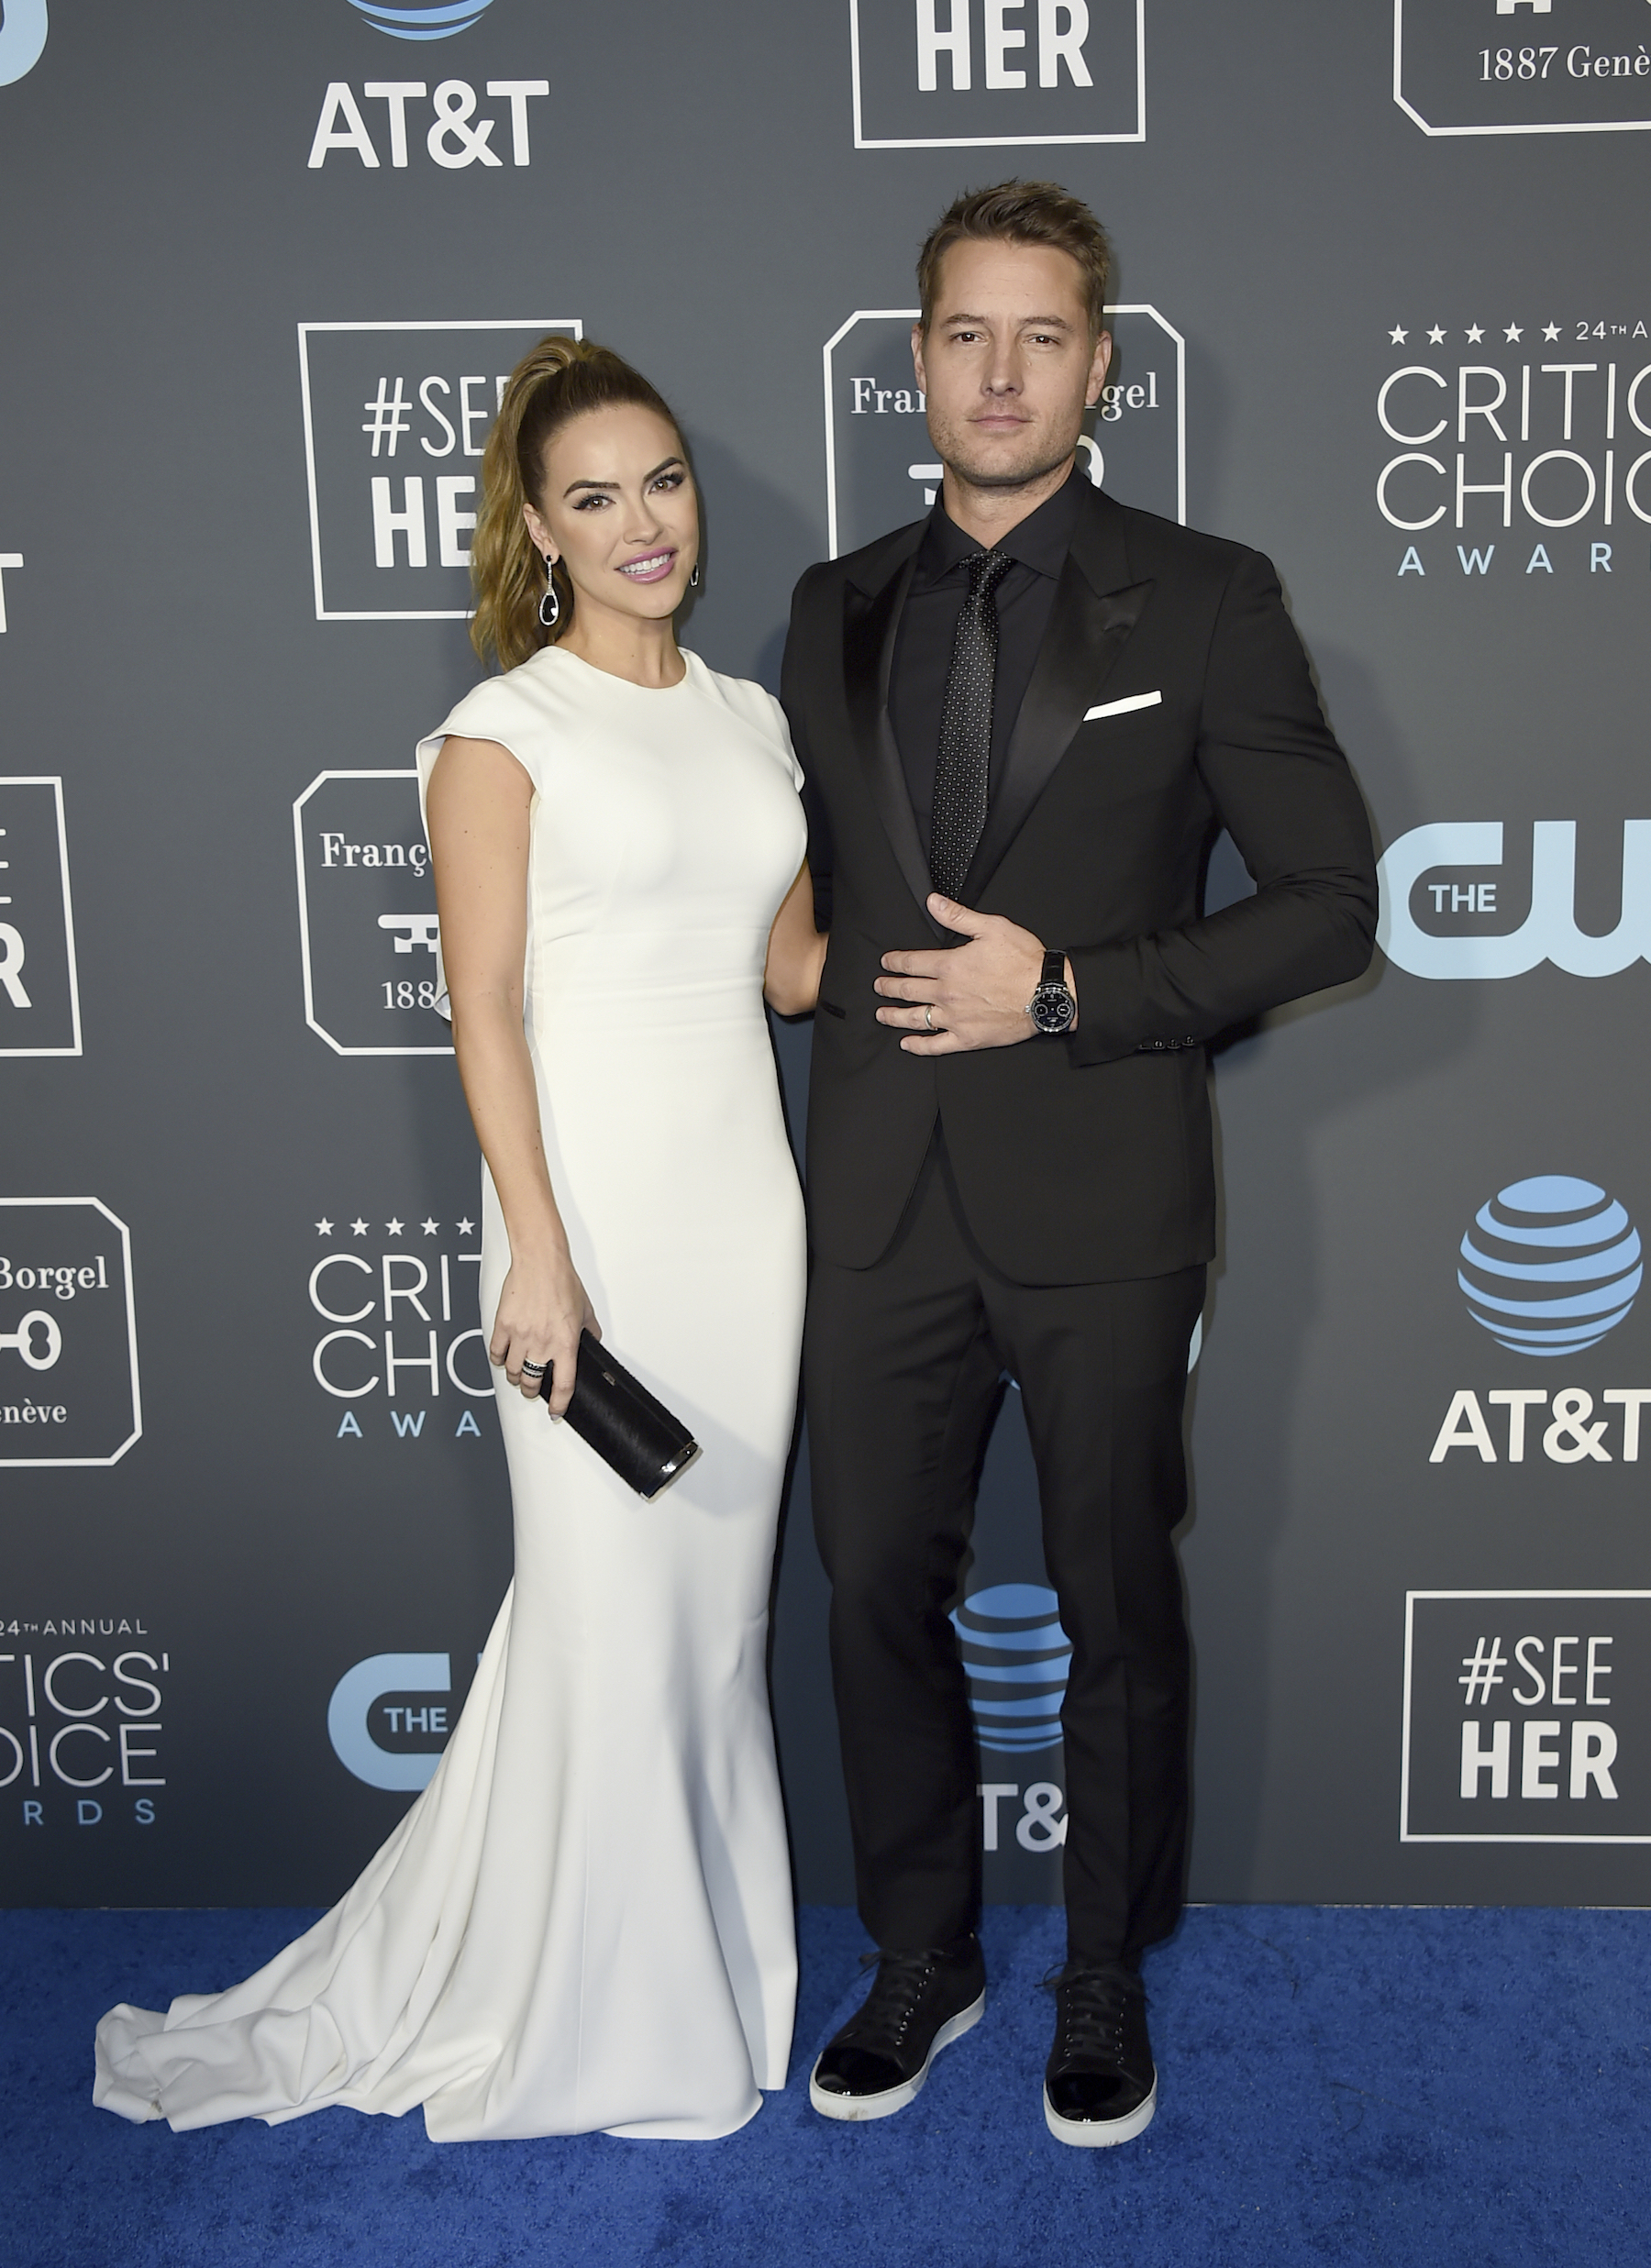 "<div class=""meta image-caption""><div class=""origin-logo origin-image ap""><span>AP</span></div><span class=""caption-text"">Justin Hartley, right, and Chrishell Stause arrive at the 24th annual Critics' Choice Awards on Sunday, Jan. 13, 2019, at the Barker Hangar in Santa Monica, Calif. (Jordan Strauss/Invision/AP)</span></div>"